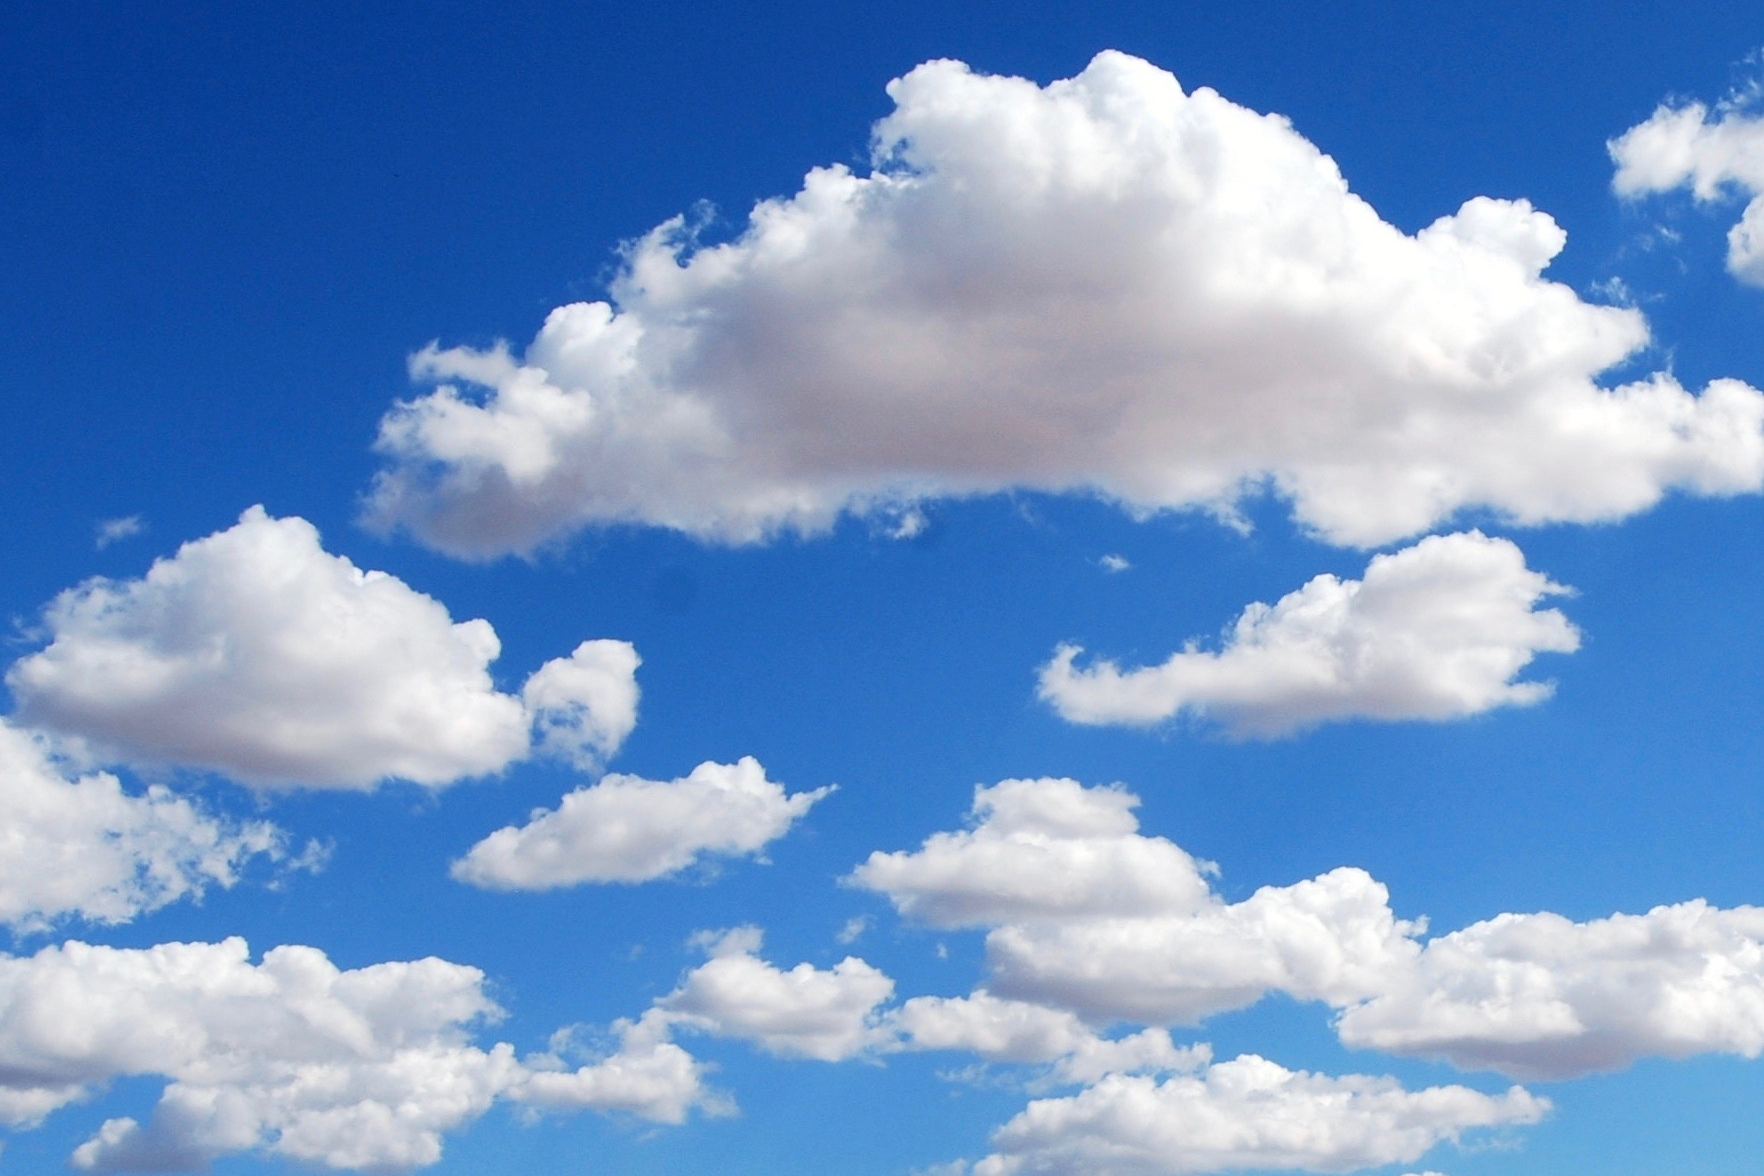 Weather & Climate Activities - Clouds AboveDIY Weather StationEarths' OrbitAtmospheres Oh My!